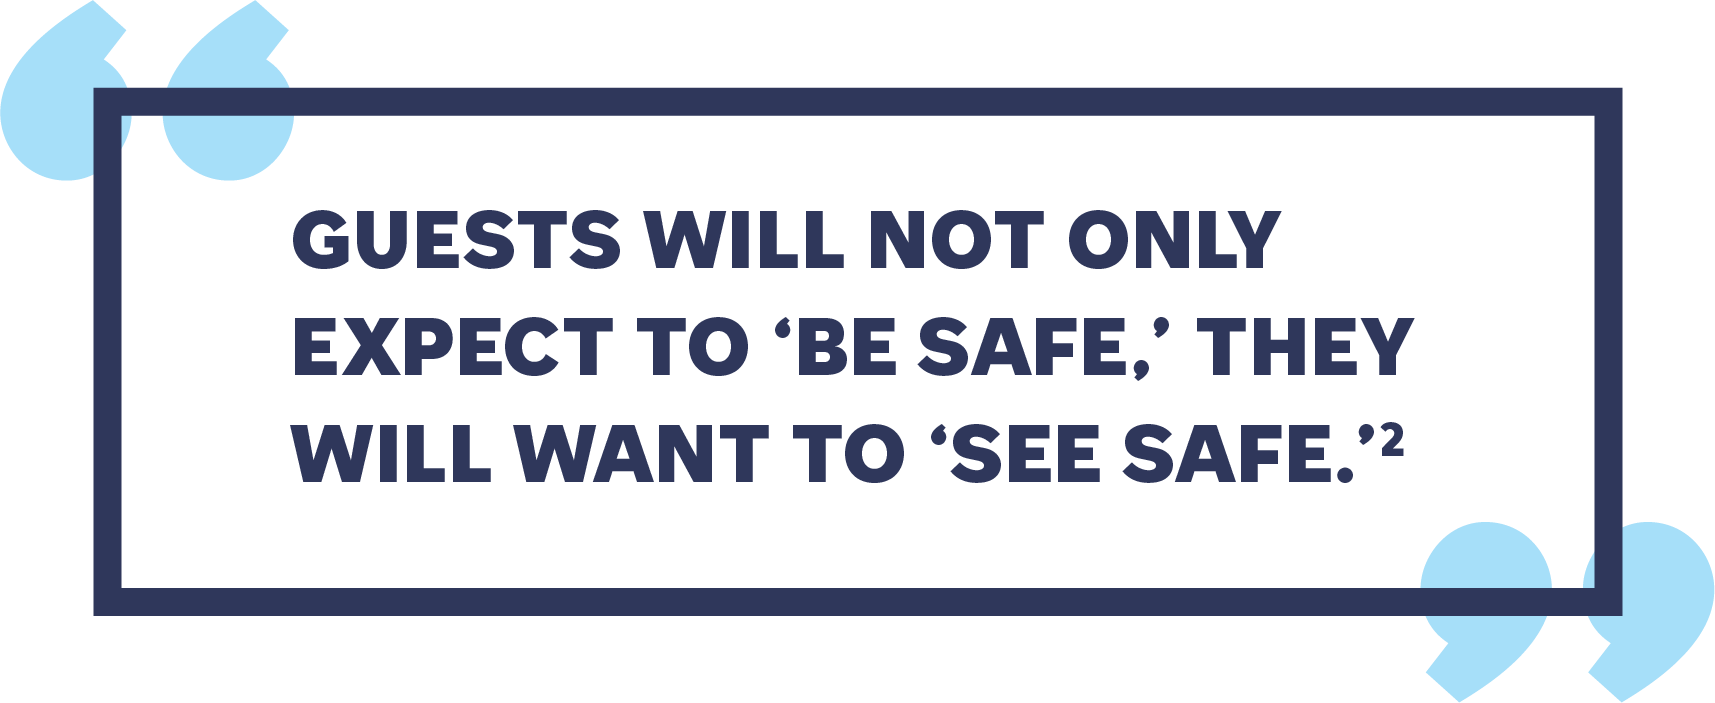 Guests will not only expect to 'be safe,' they will want to 'see safe.